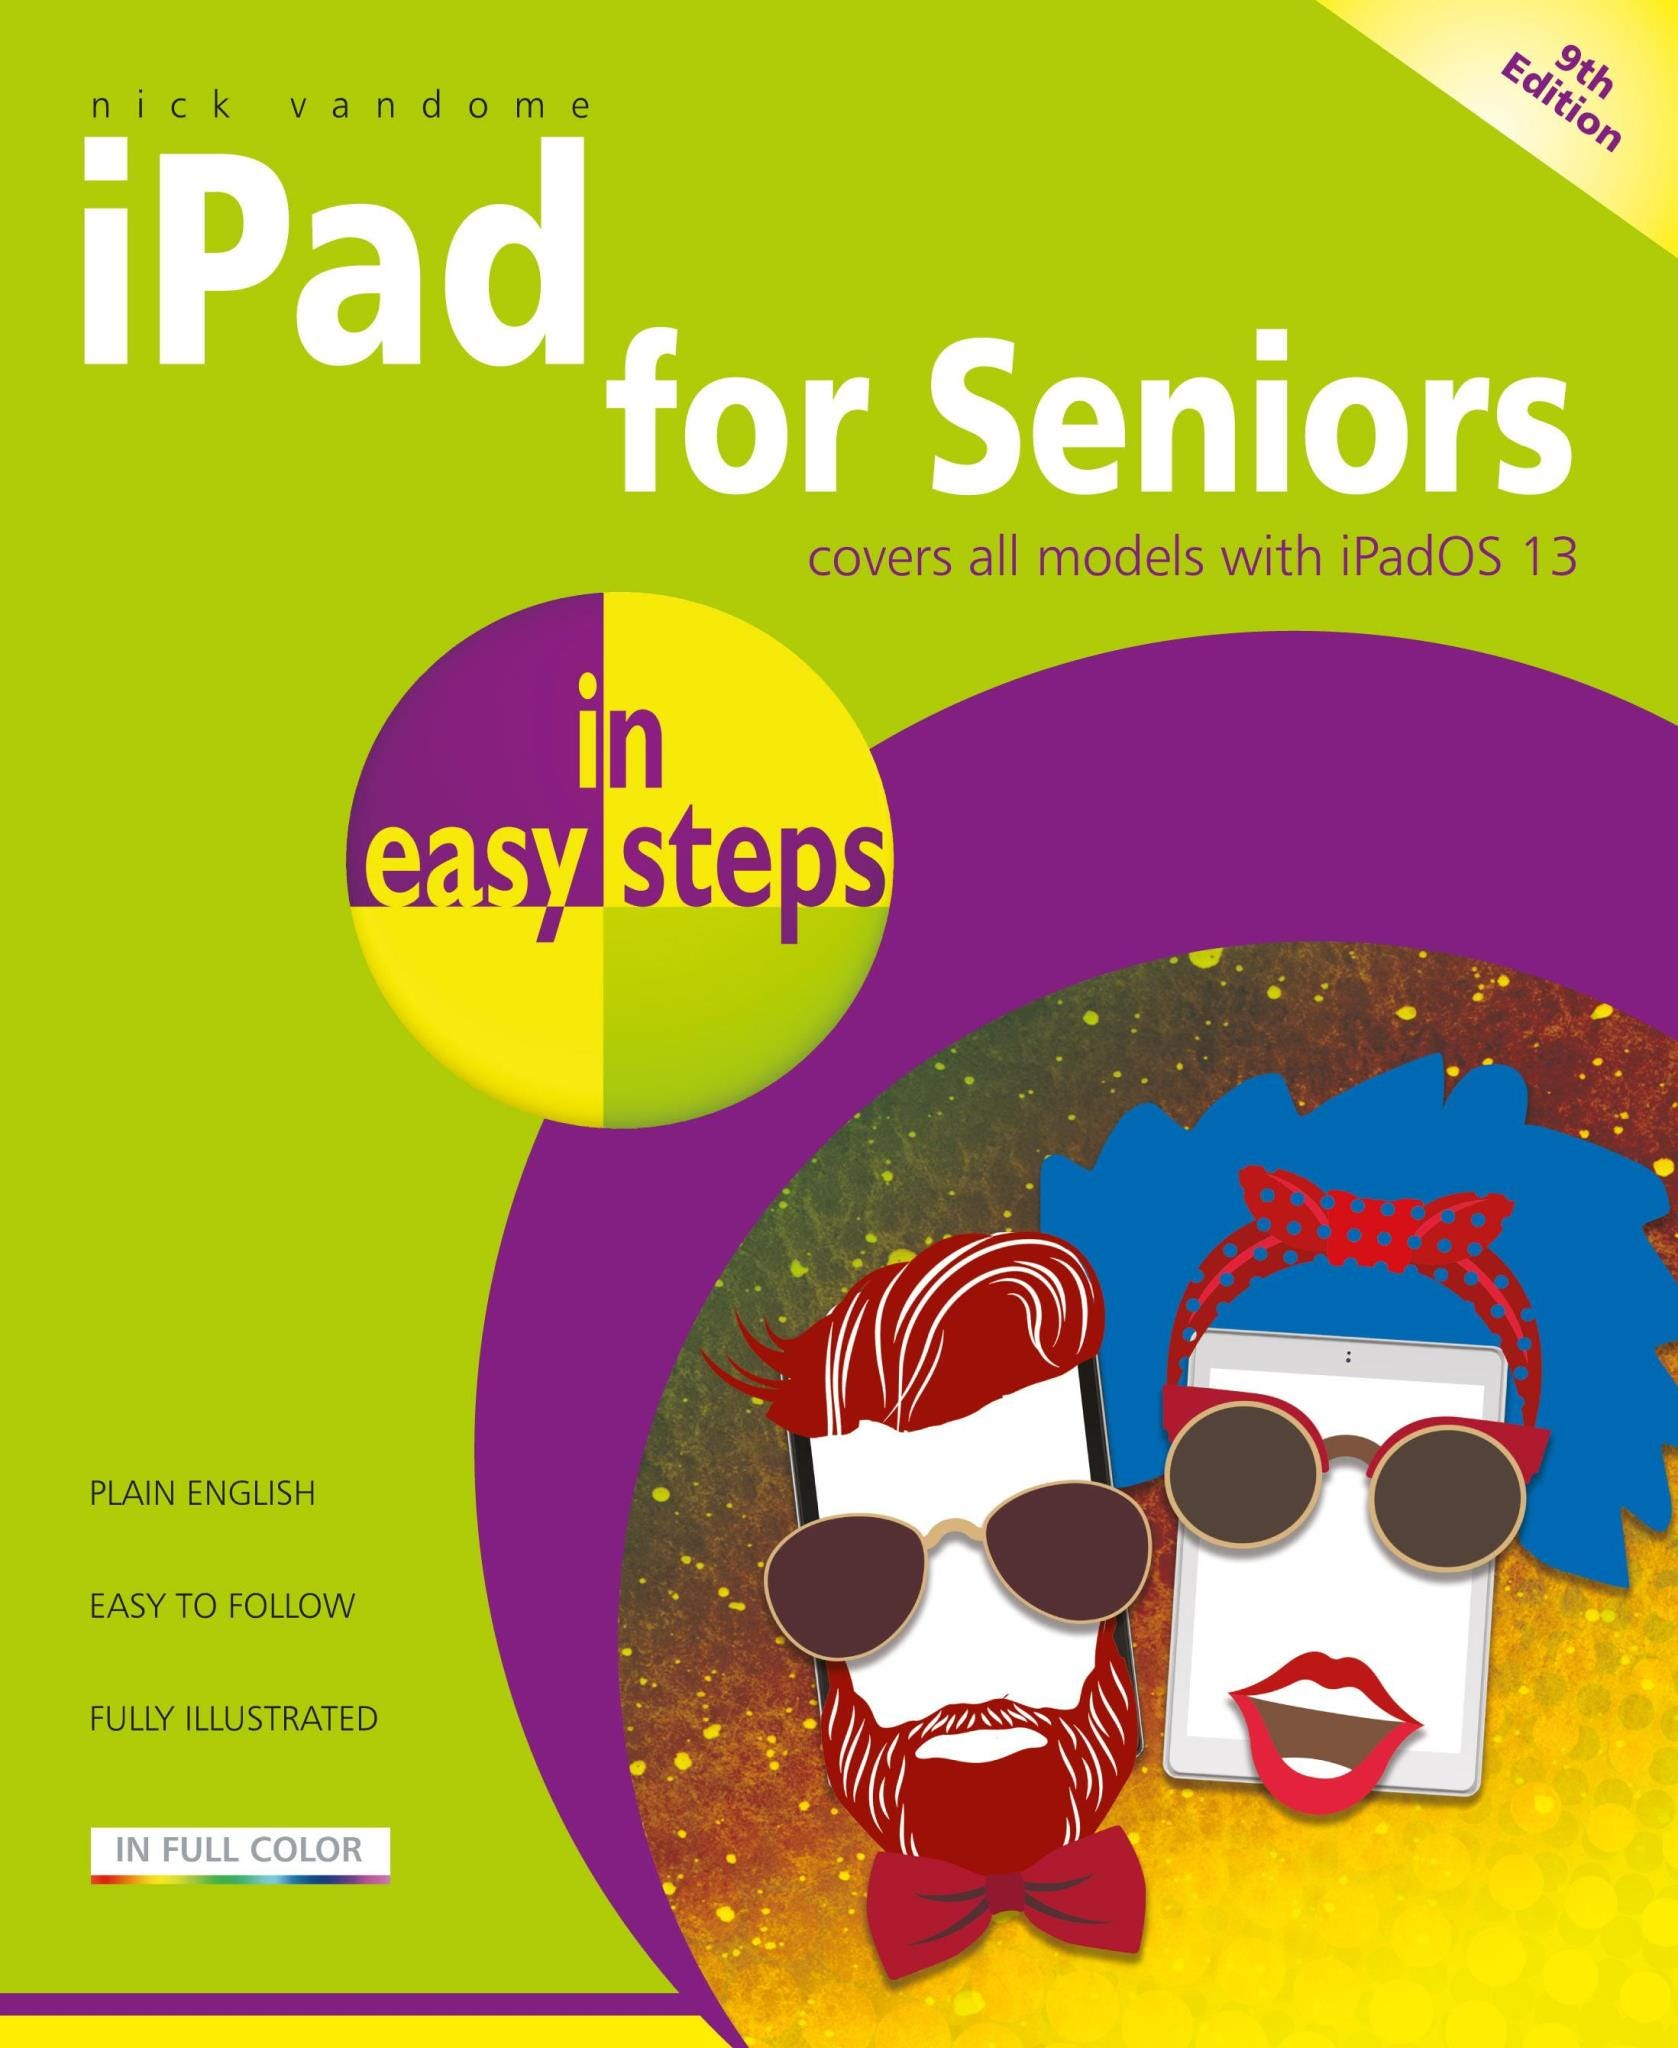 In Easy Steps iPad for Seniors , 9th edition - covers all iPads with iPadOS 13